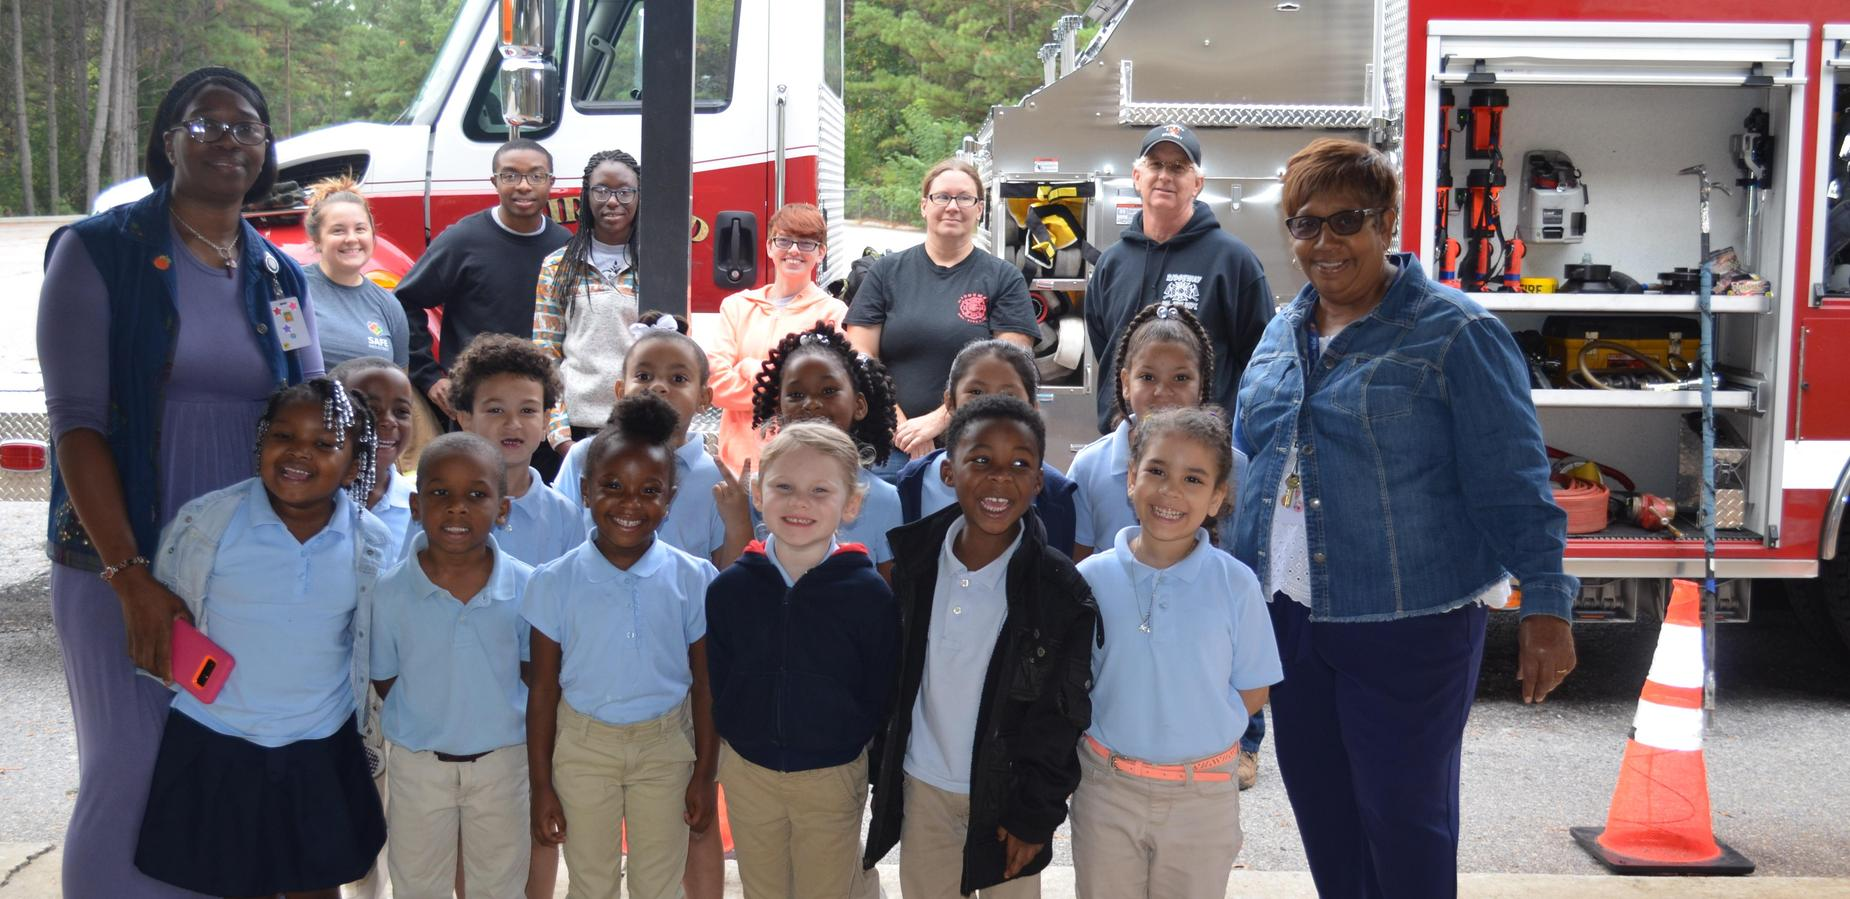 5K Class picture with Firefighters.